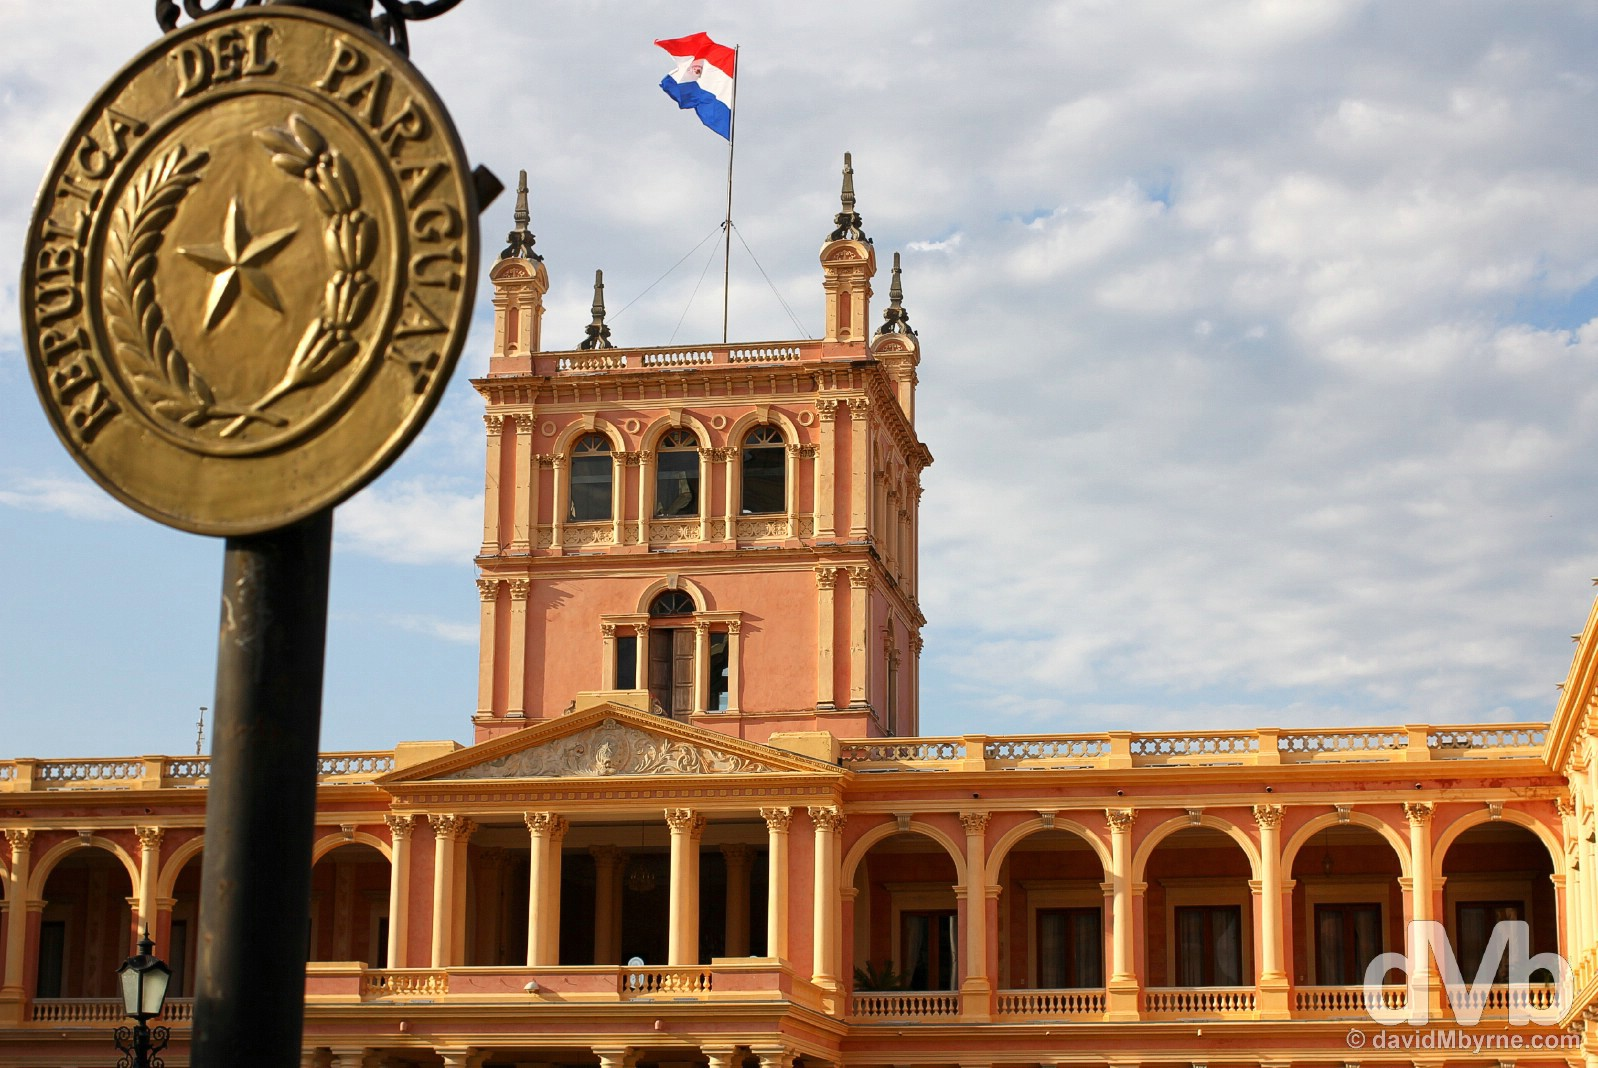 The Paraguayan seat of government, the Placio de Gobierno in Asuncion, Paraguay. September 9, 2015.